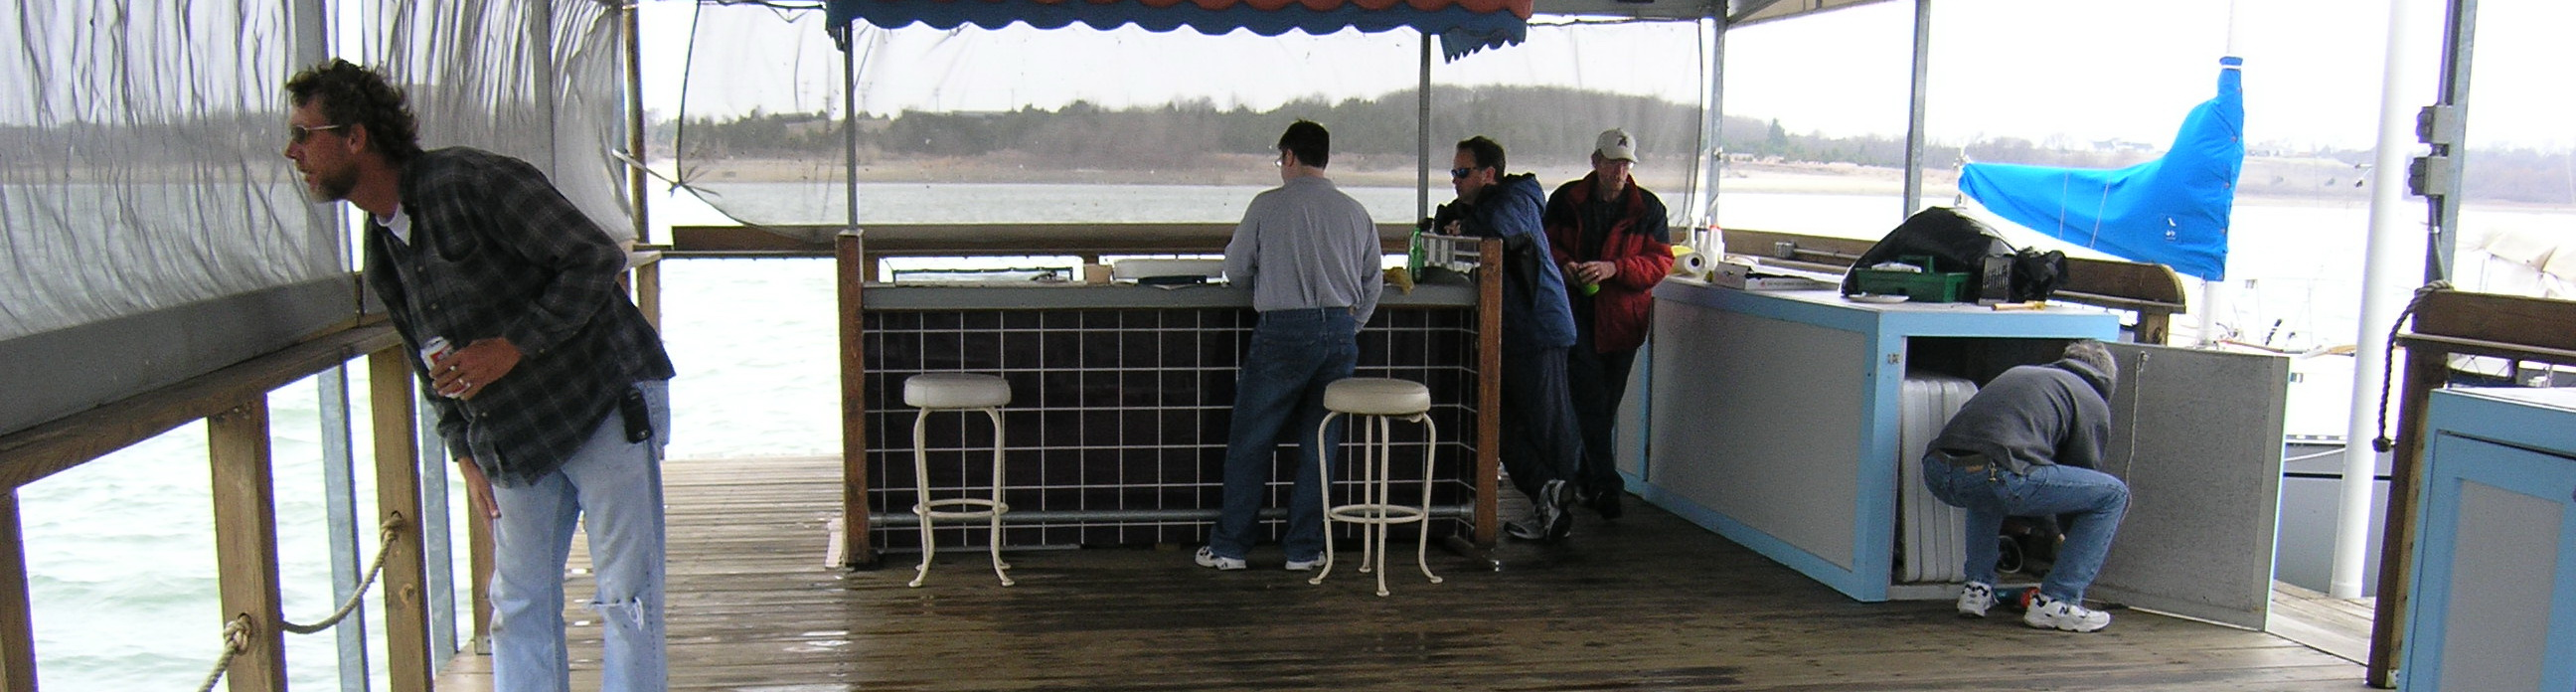 Dock Clean Up March 14th — New season